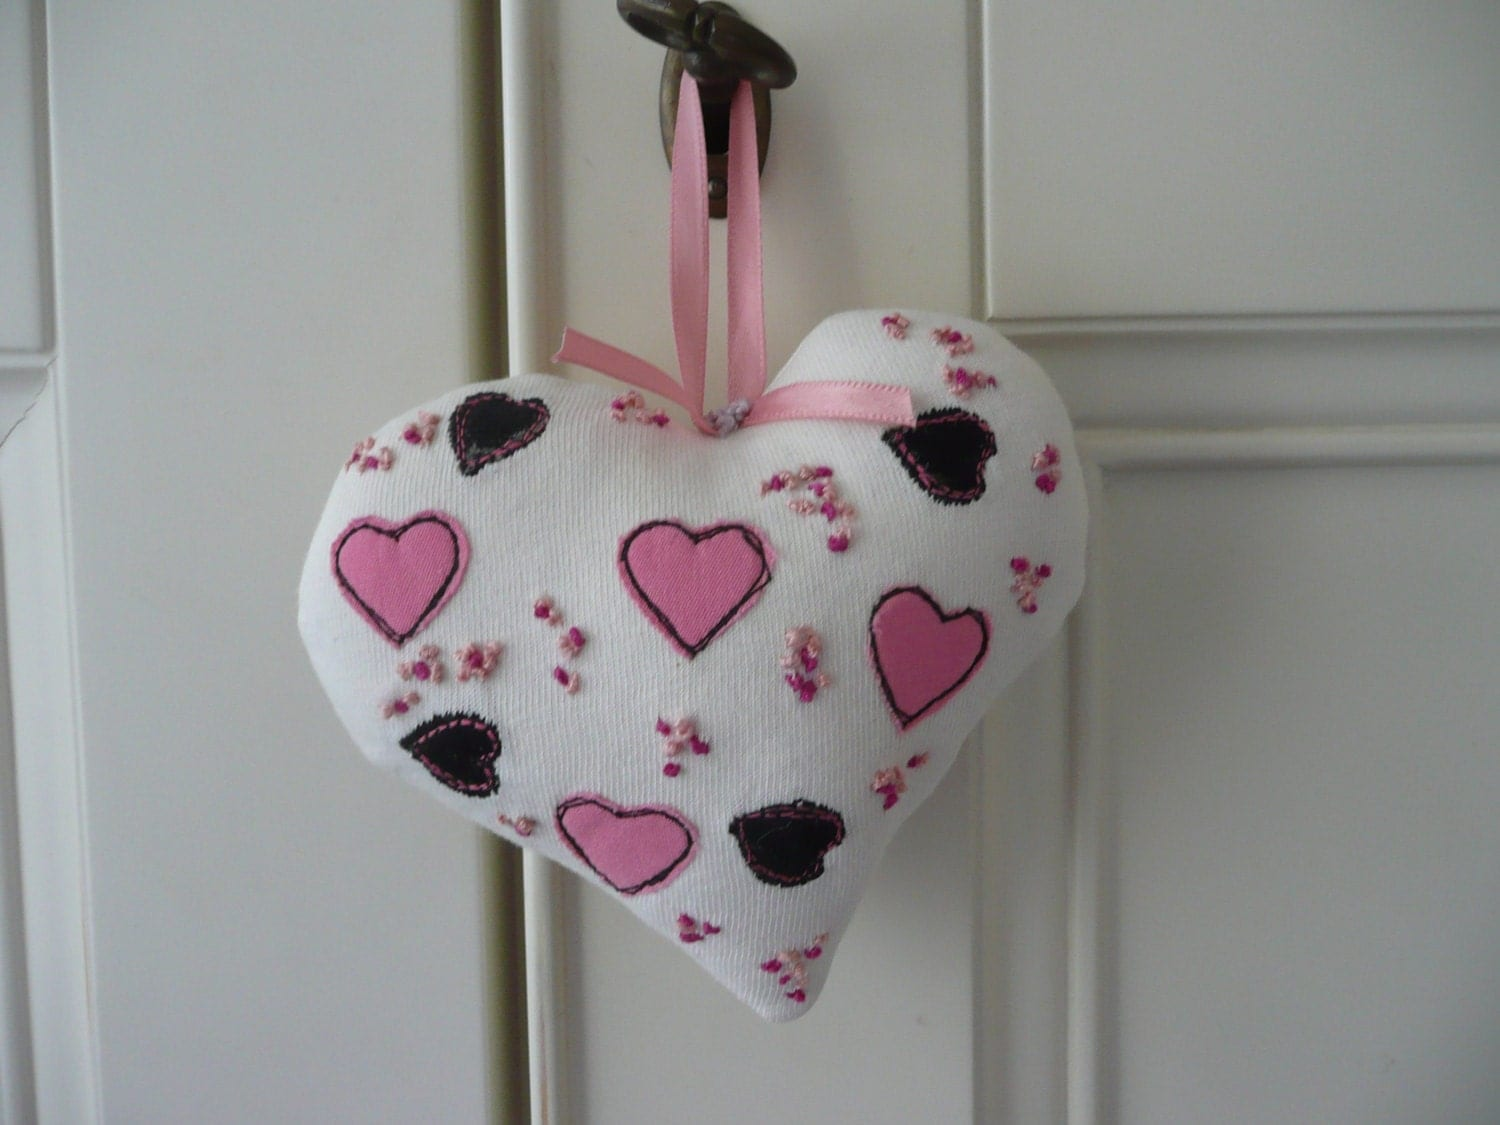 Embroidered Fabric Heart Padded HeartApplique Pink Hearts Hanging Heart Fabric Door Hanger Gift for Mother New Home Gift Wedding Gift